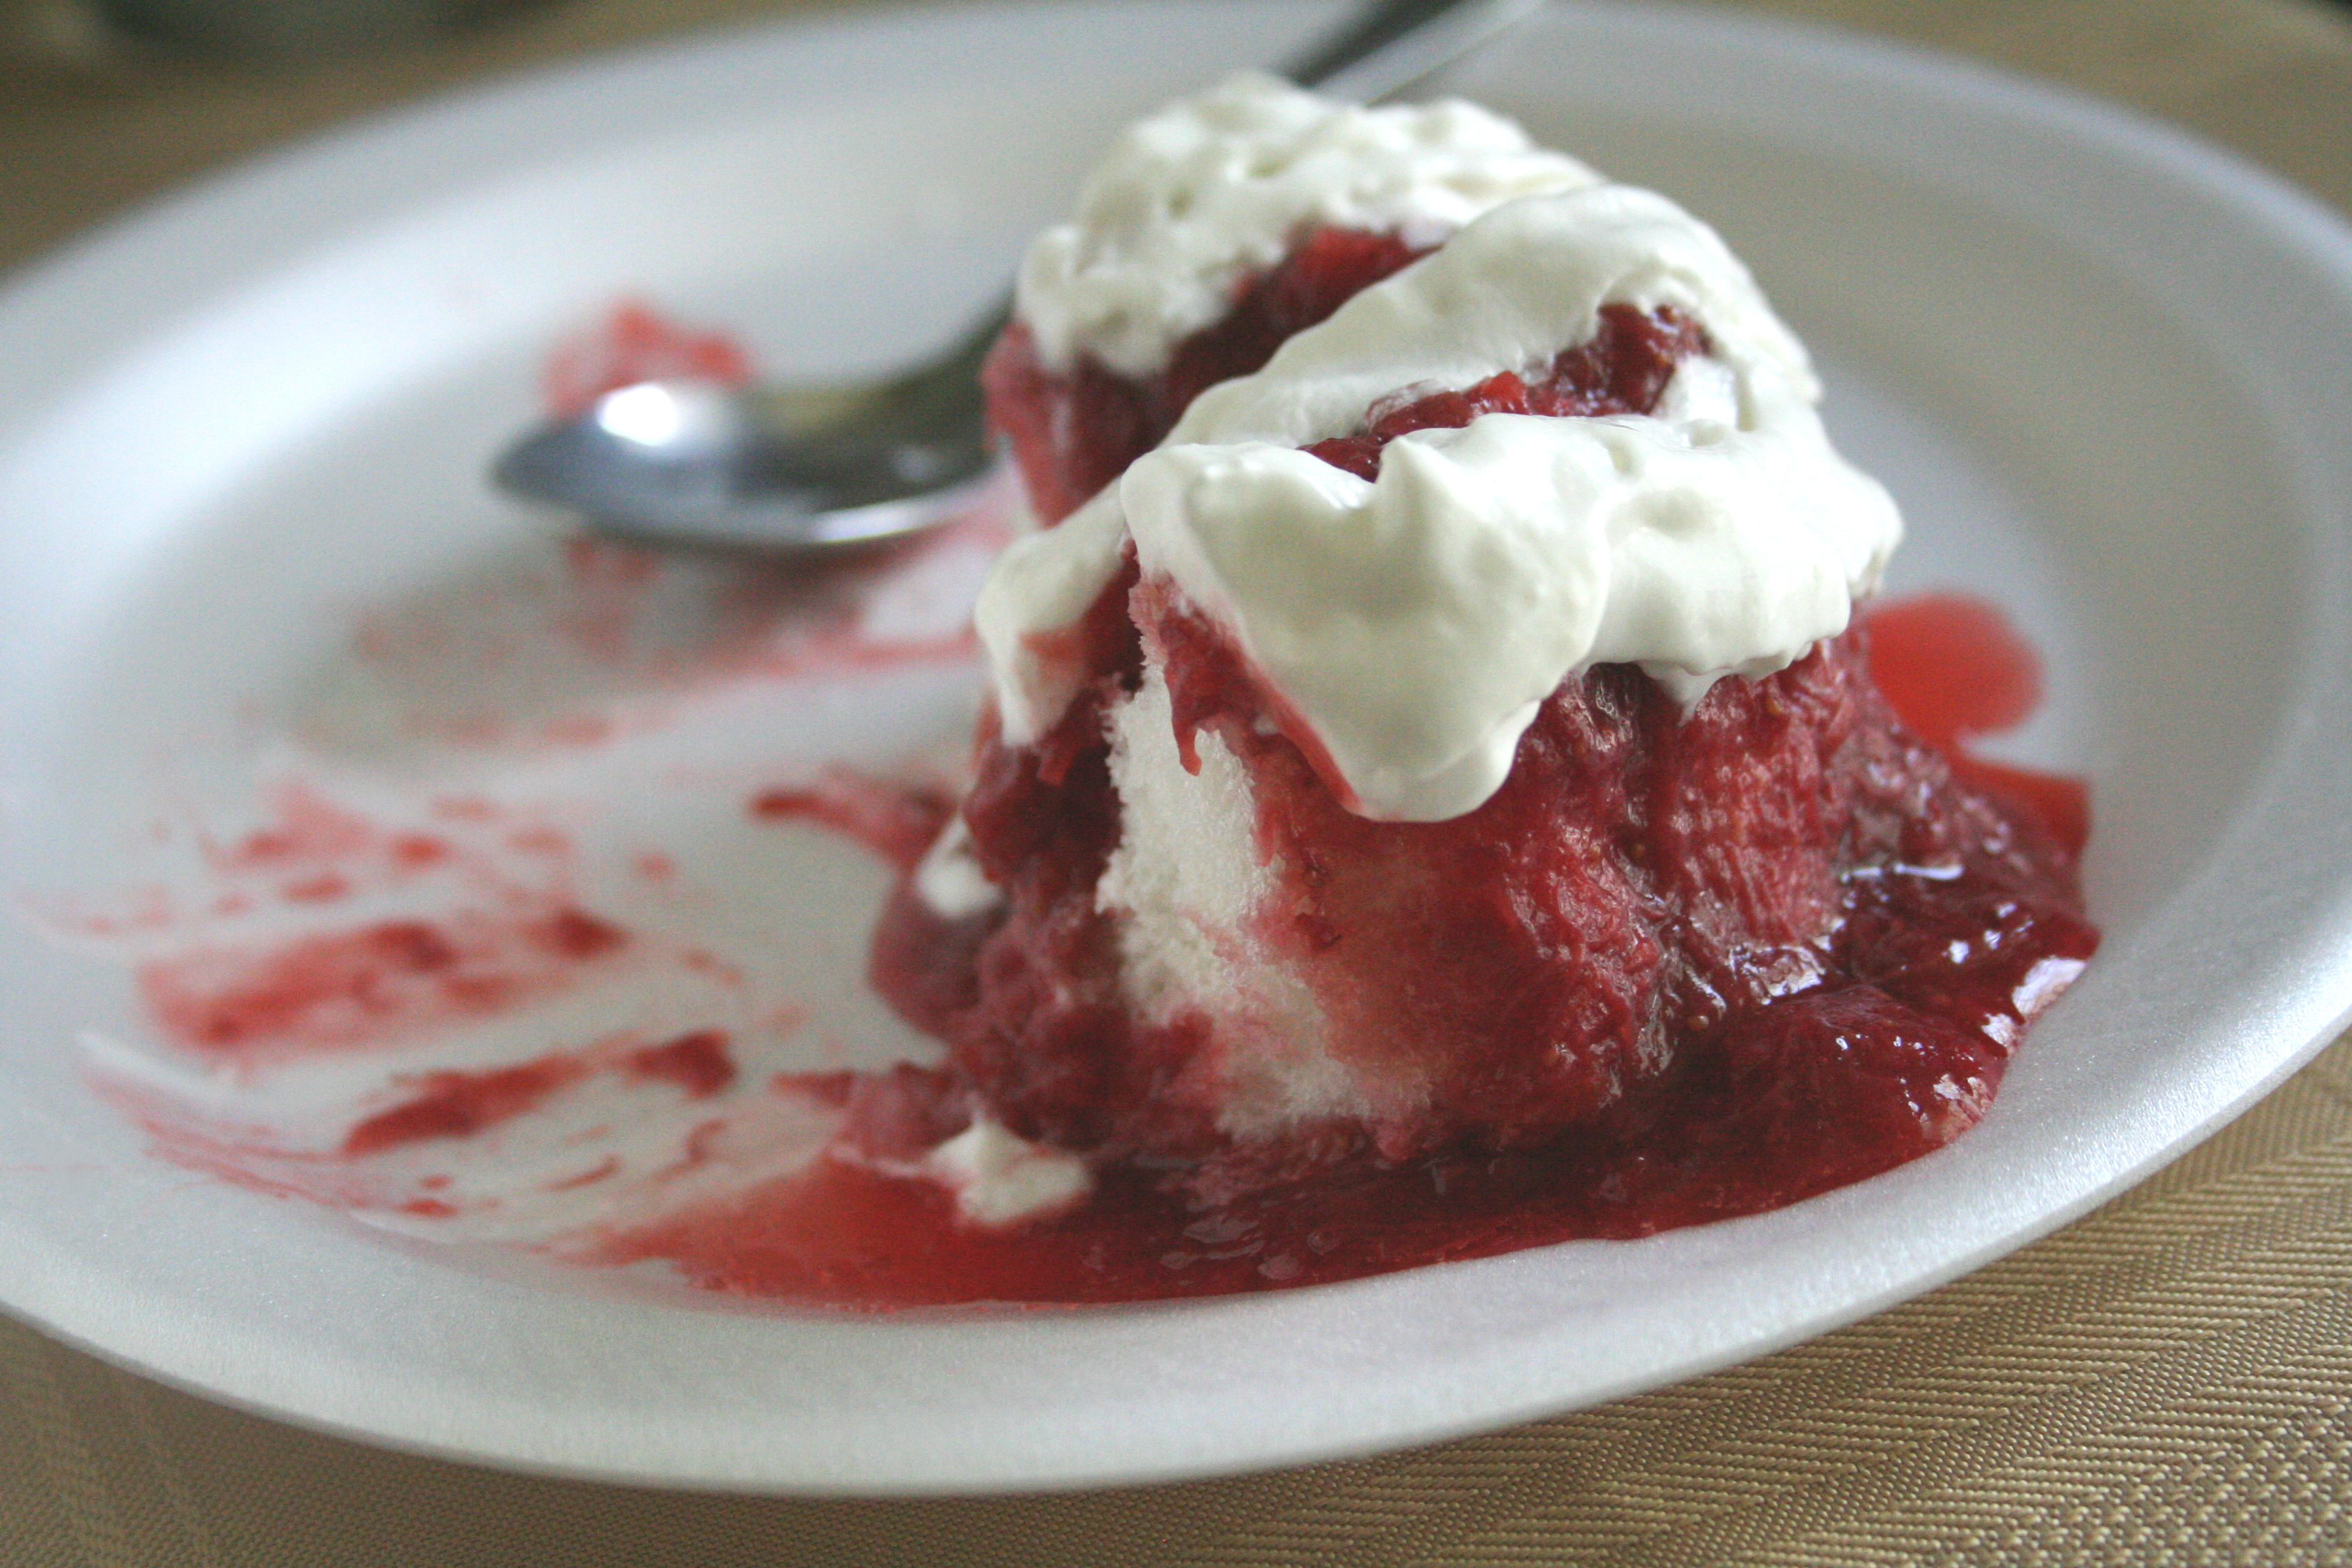 rhubarb rhubarb and strawberry compote strawberry rhubarb compote ...